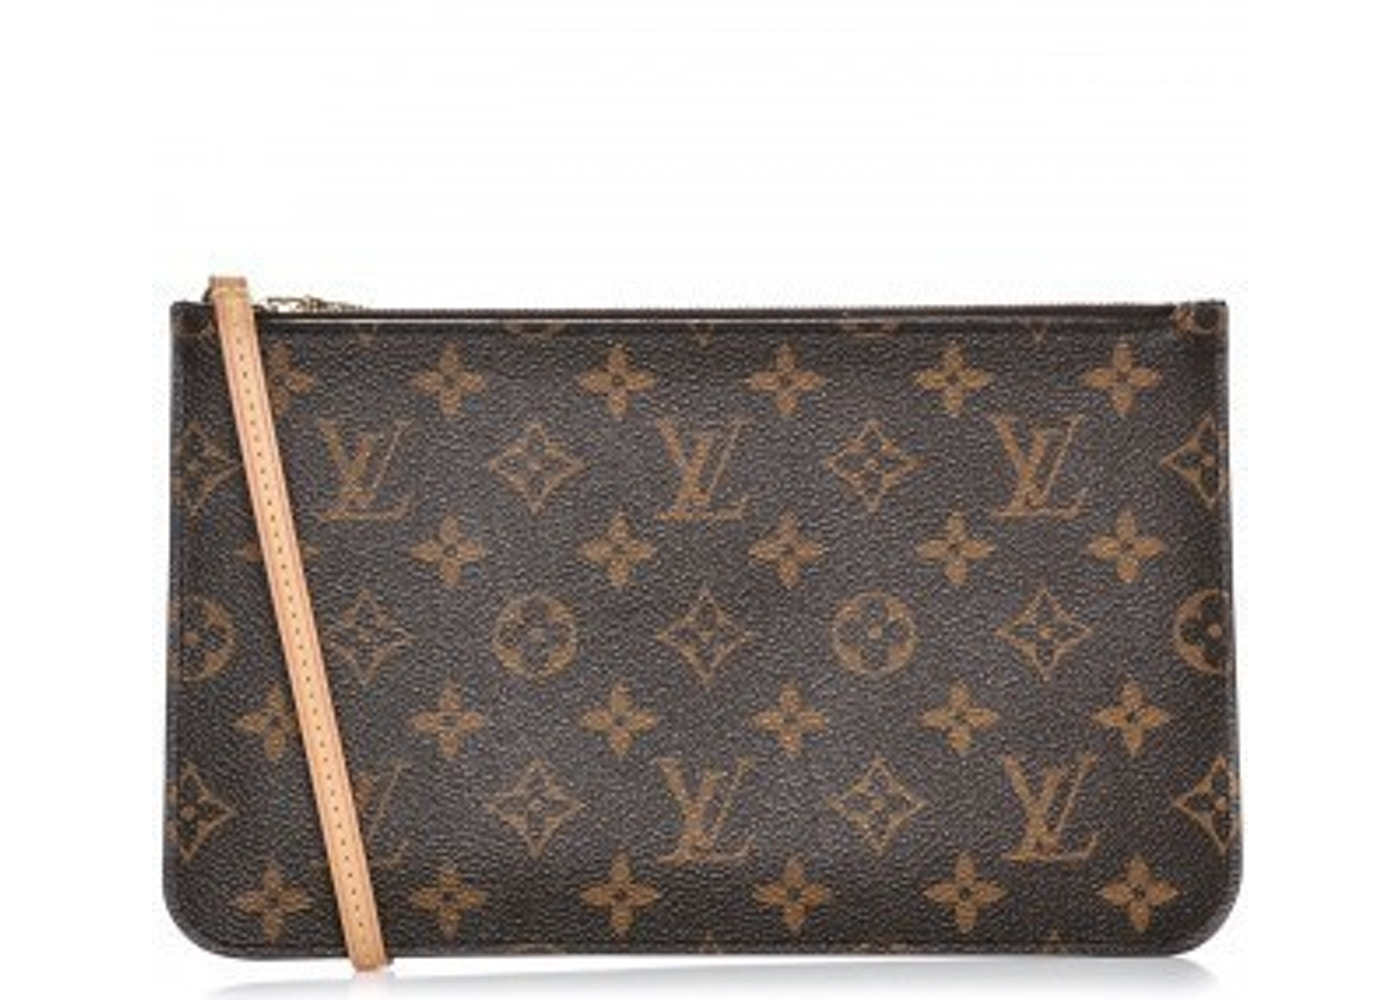 9202b3686b4e Louis Vuitton Neverfull Pochette MM Monogram Brown. MM Monogram Brown